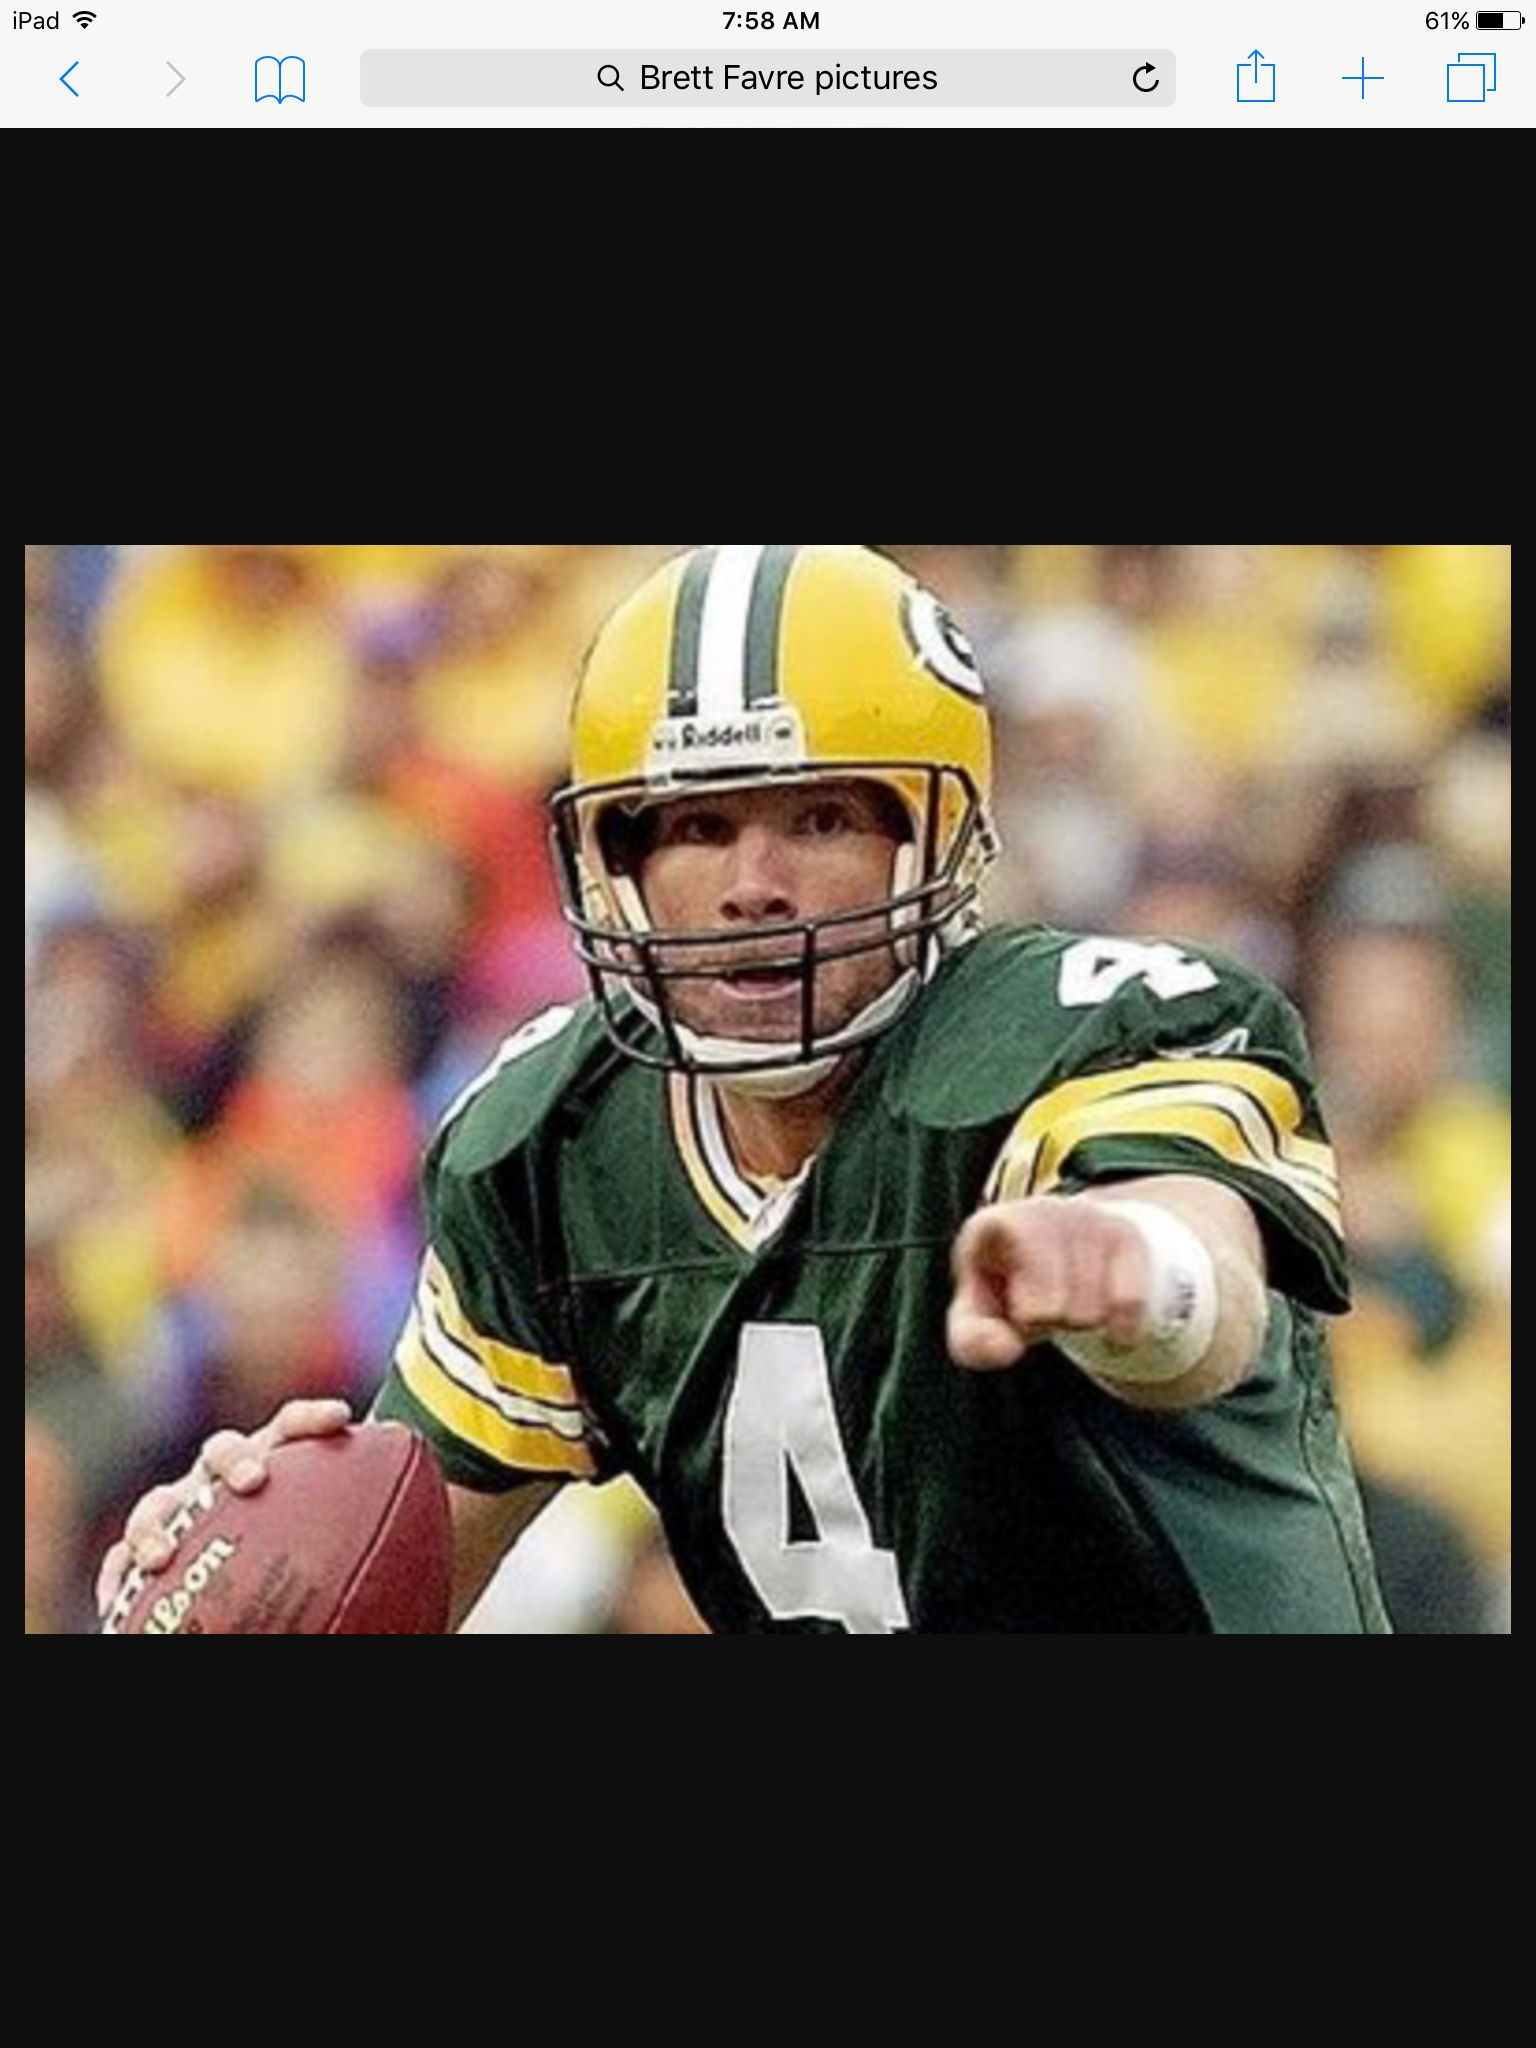 Go Farce Green Bay Packers Packers Hall Of Fame Packers Football